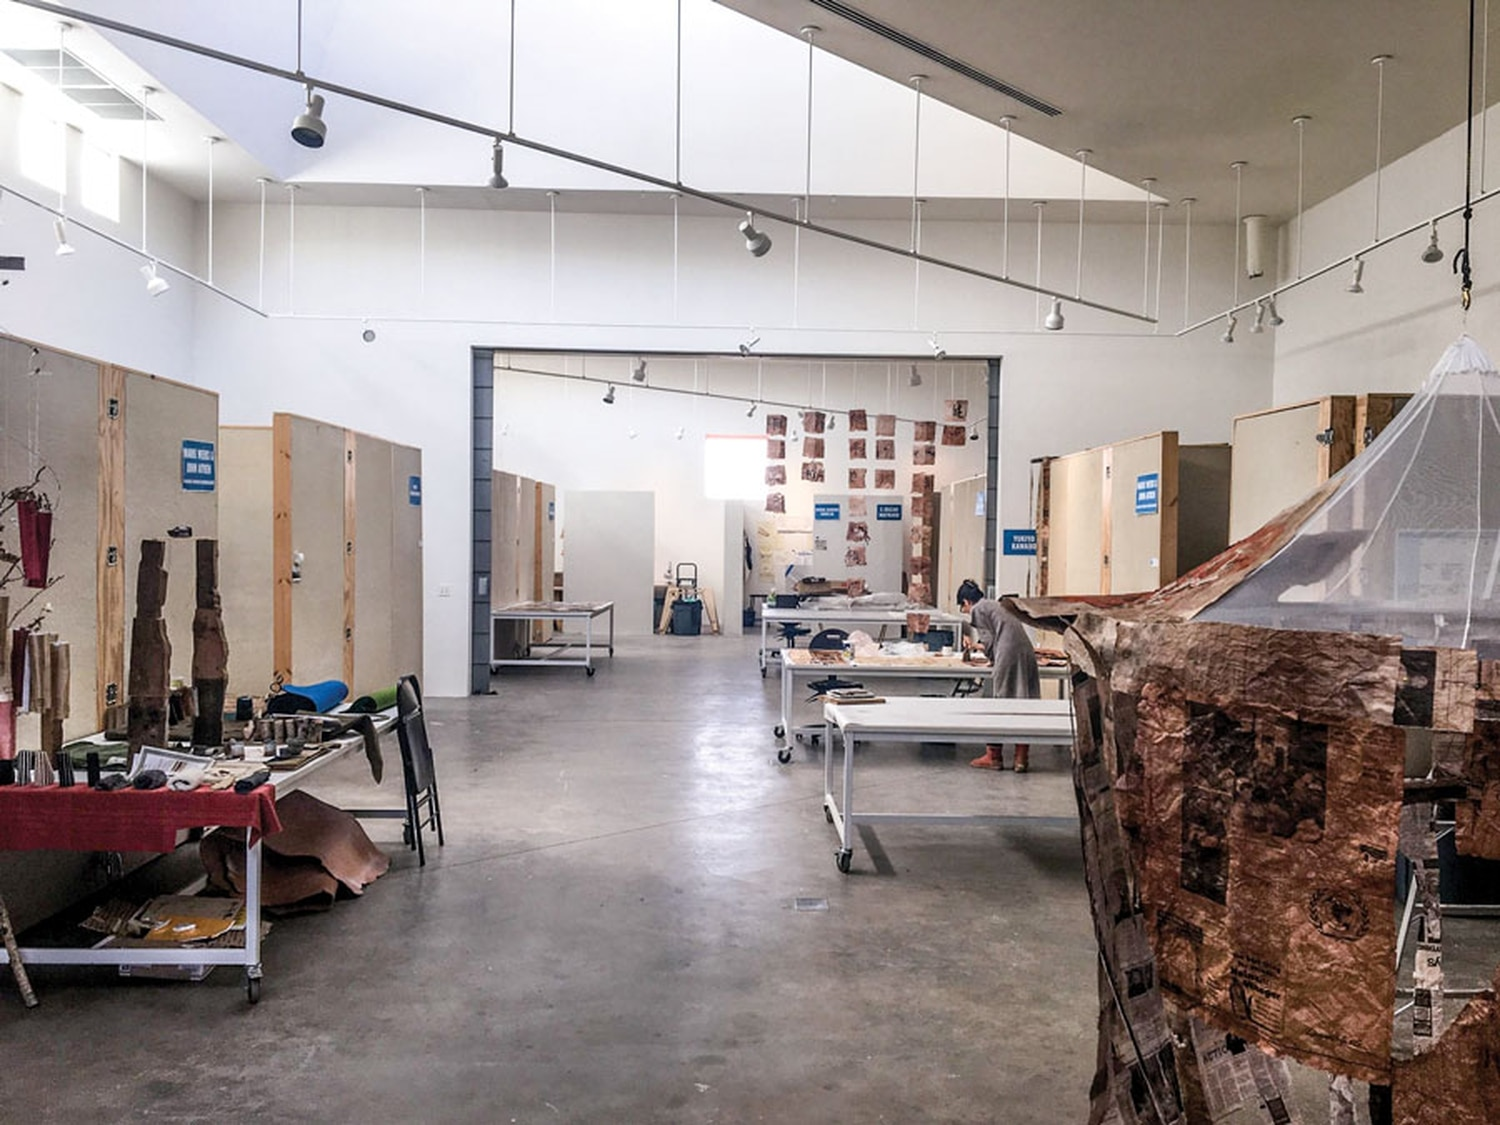 Artists, during their residencies, have living and studio space at SFAI.